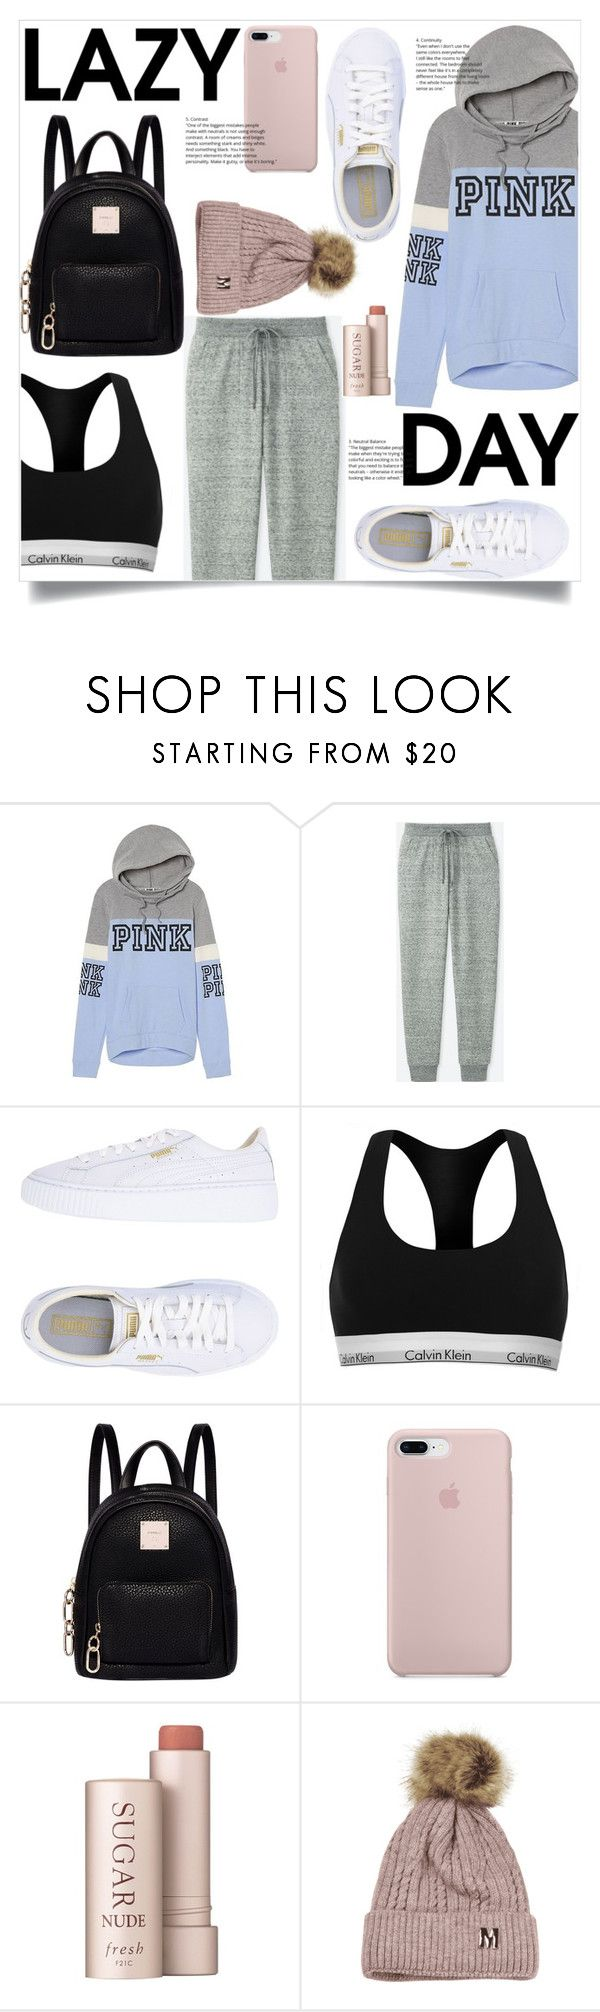 """""""Sleep In: Lazy Day"""" by jane-cupacake ❤ liked on Polyvore featuring Victoria's Secret PINK, Uniqlo, Puma, Calvin Klein, Fiorelli and Fresh"""